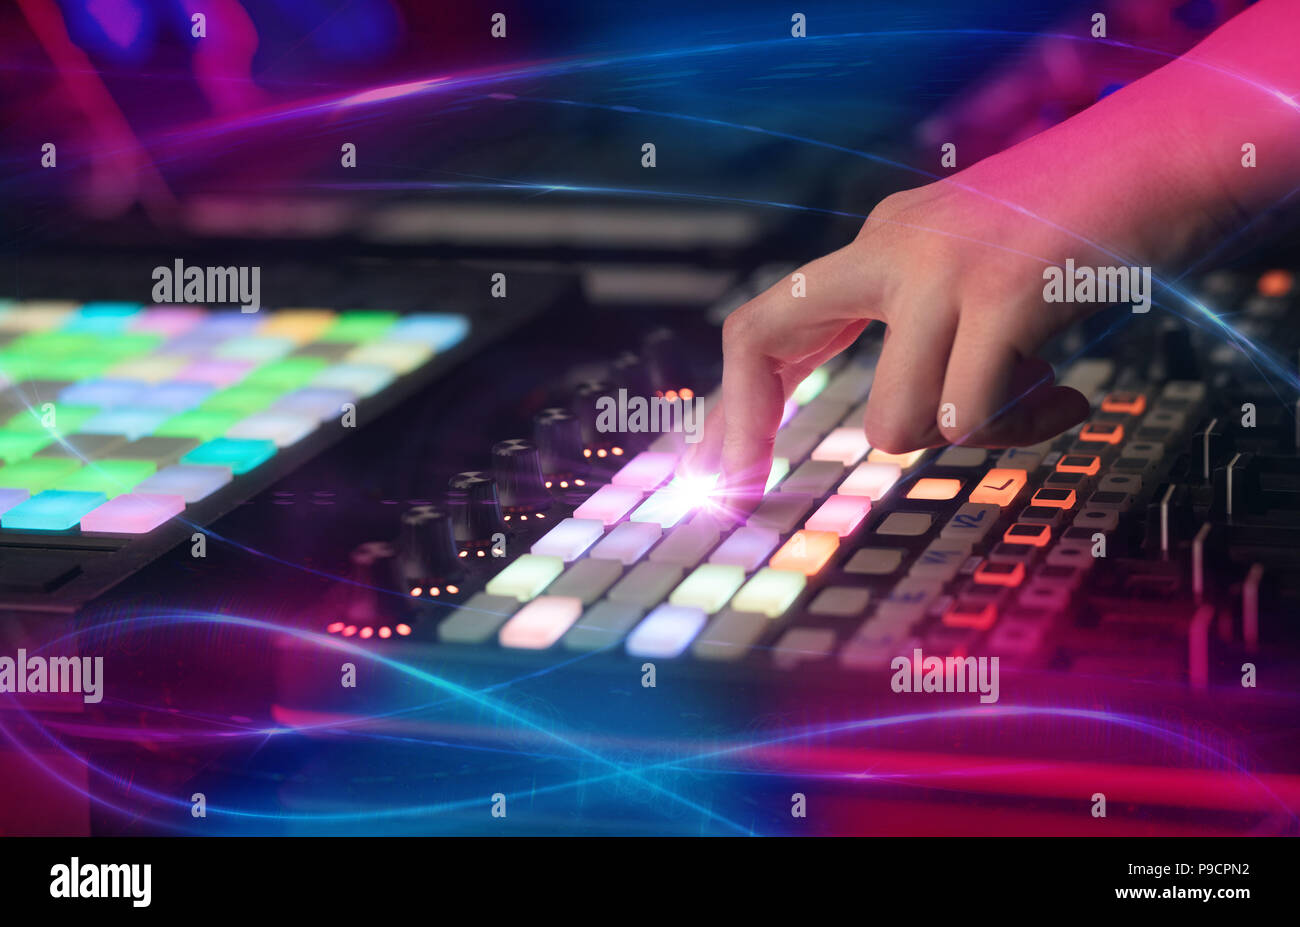 Hand mixing music on midi controller with wave vibe concept  - Stock Image